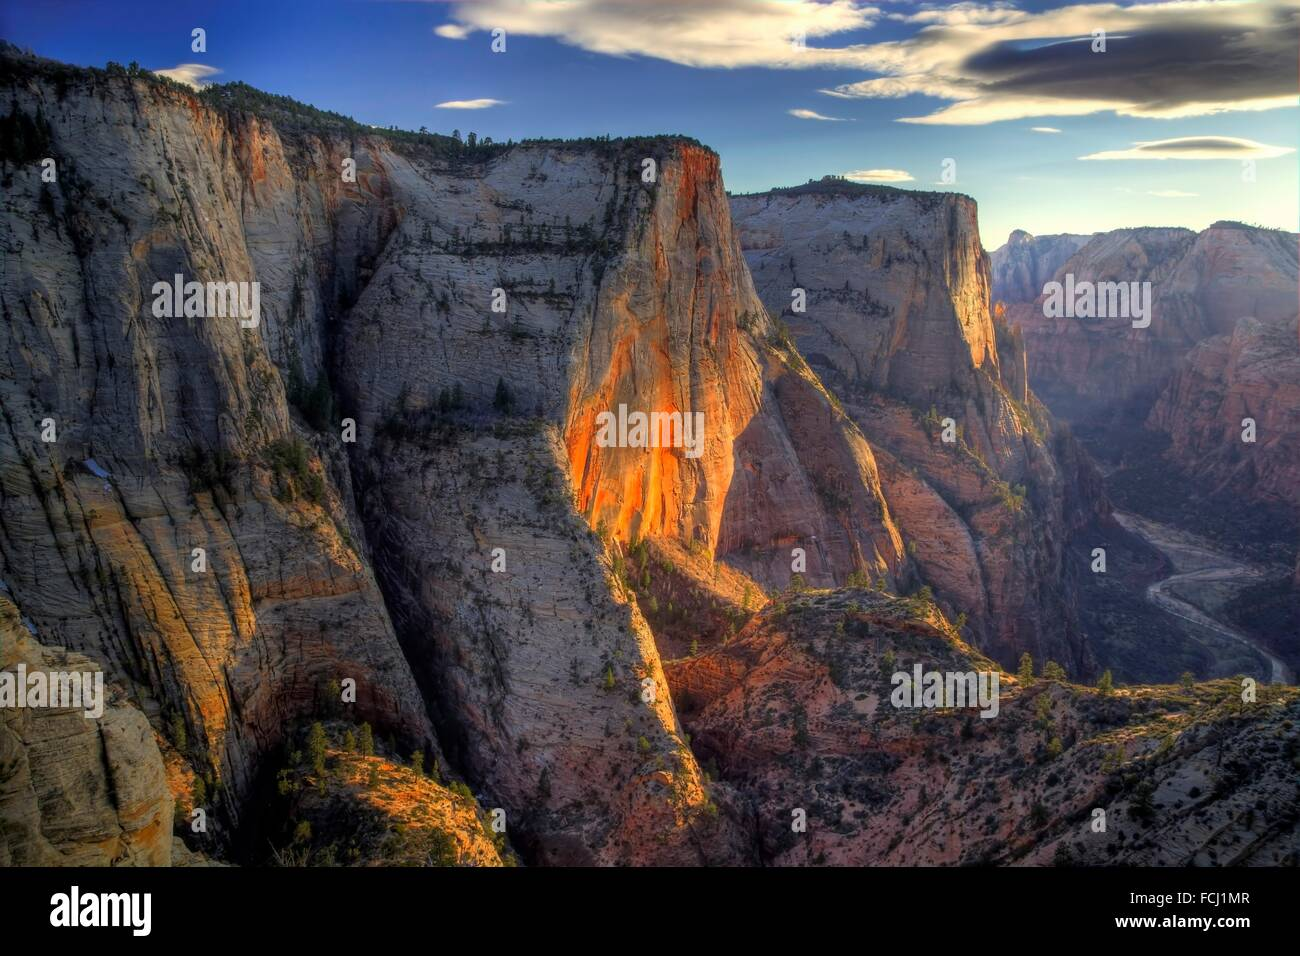 Cable Mountain shines brightly during sunset from the Observation Point Trail at Zion National Park, Utah. - Stock Image